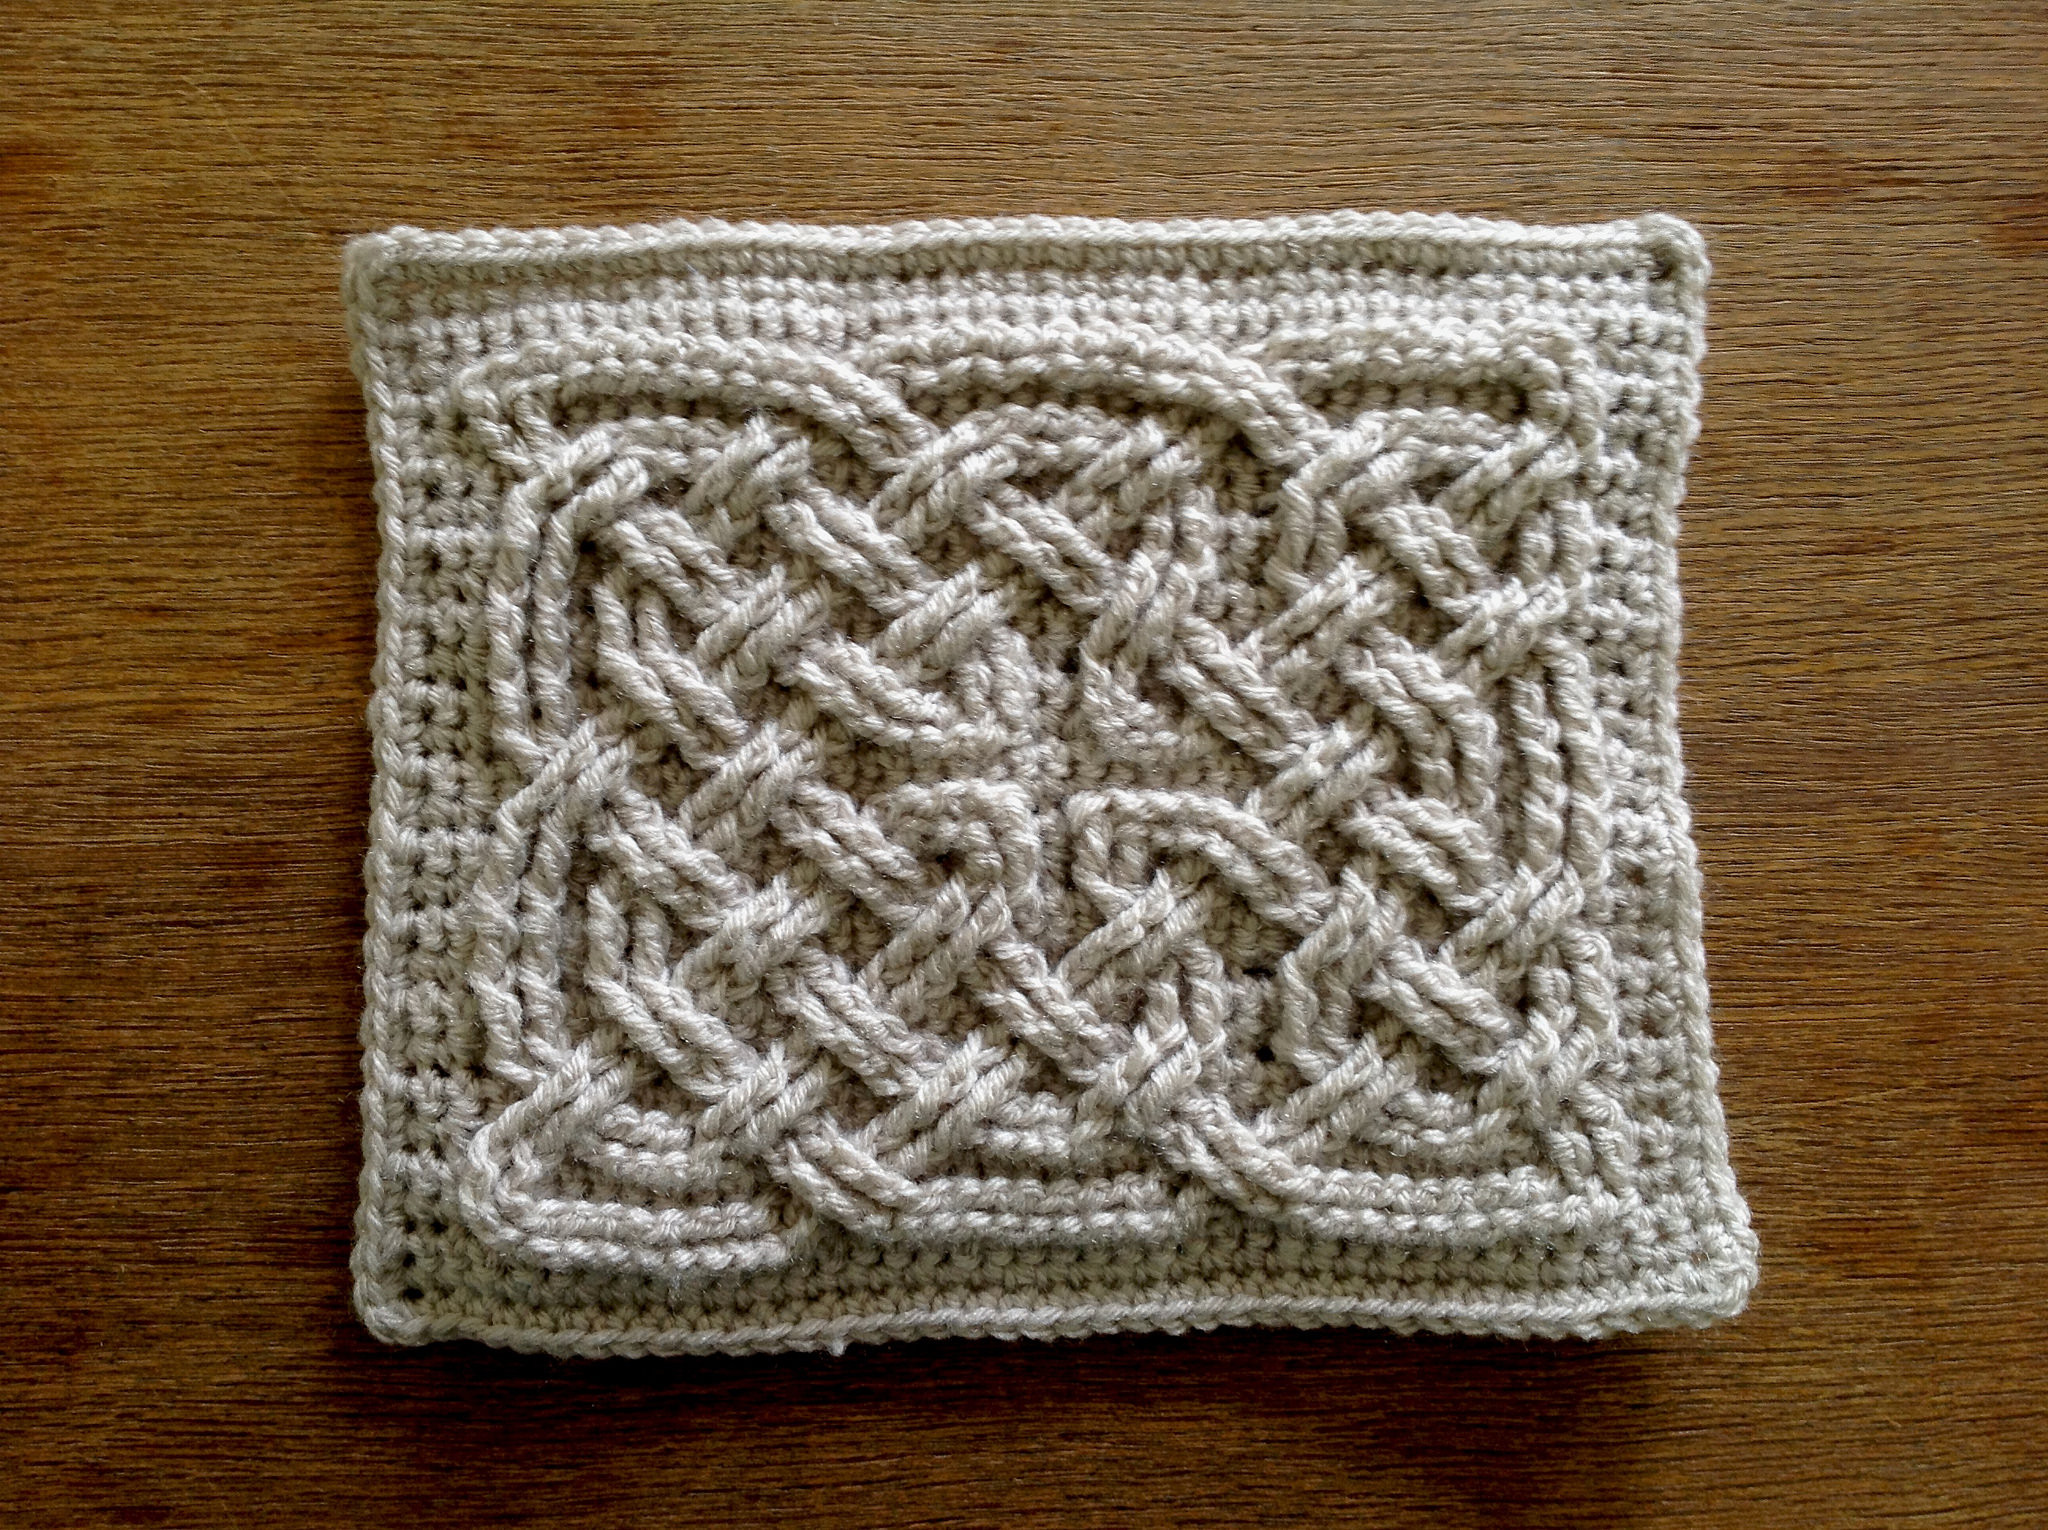 Awesome Suvi S Crochet Book Of Kells Celtic Square Knot Square Crochet Stitch Of Lovely 49 Photos Square Crochet Stitch